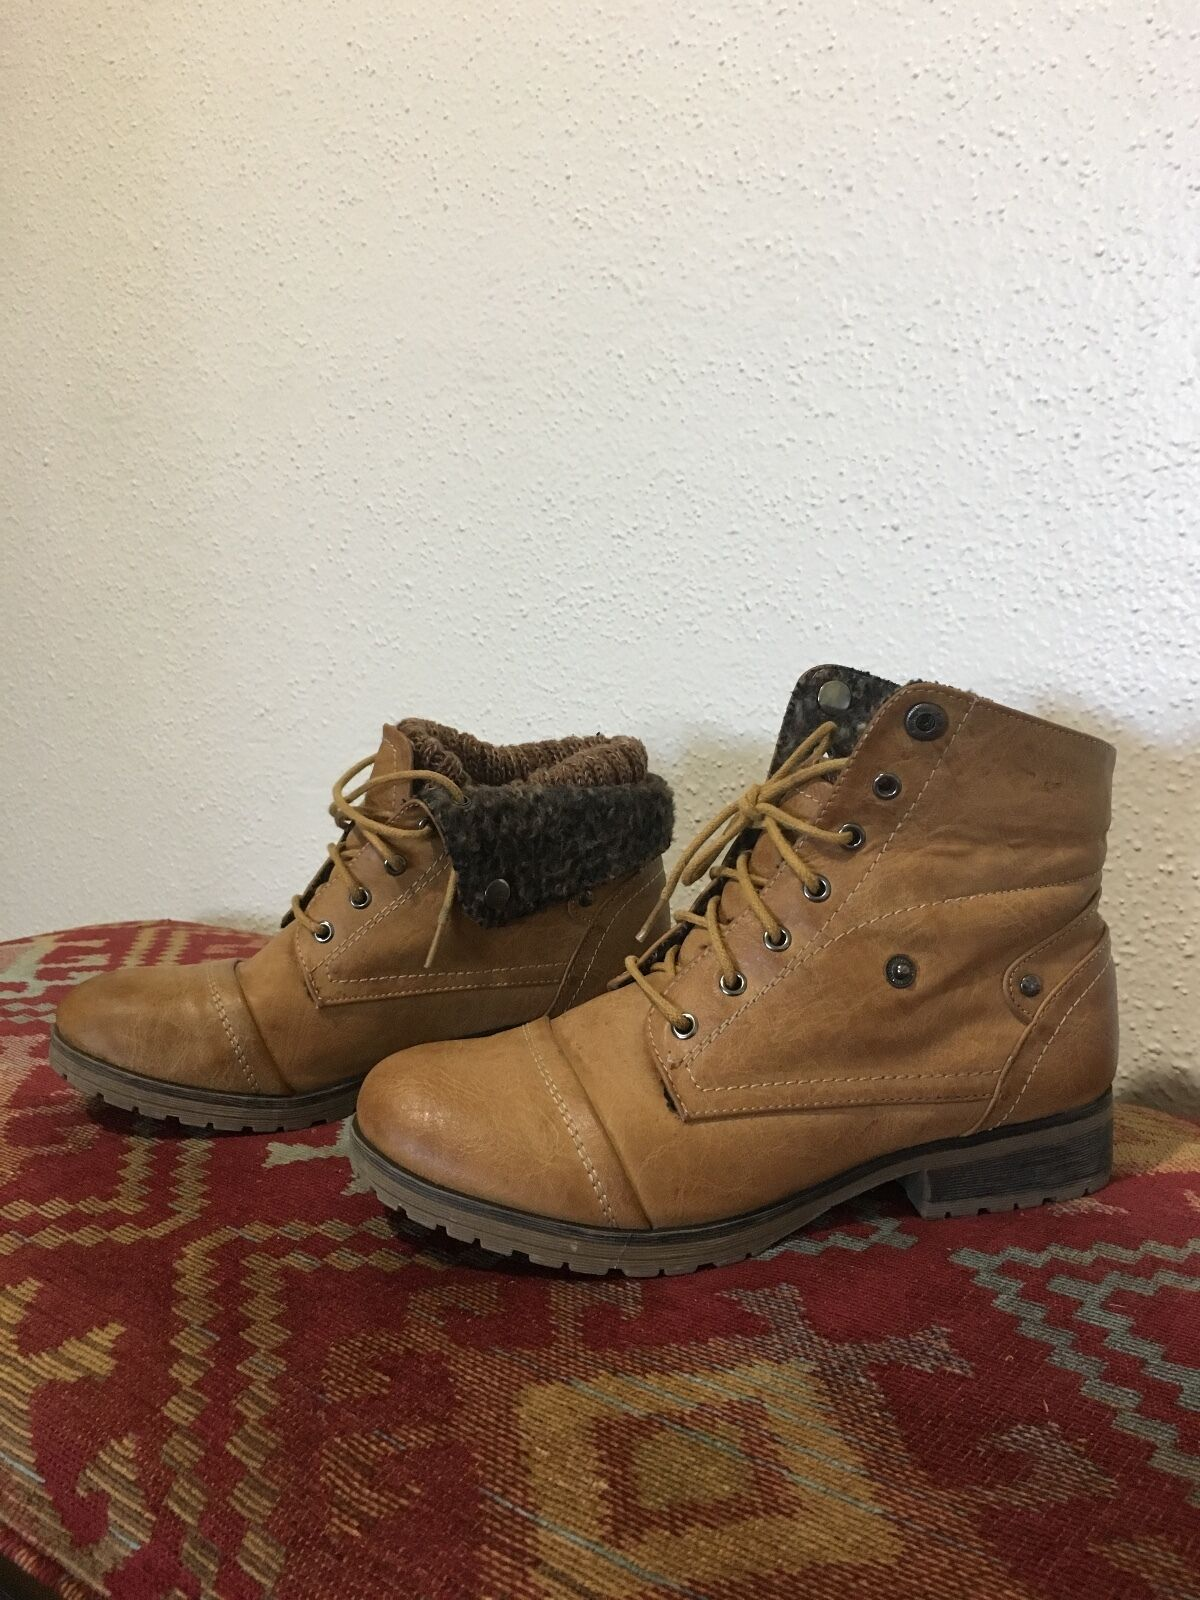 womens PRE OWNED brown heavy duty booties size 7